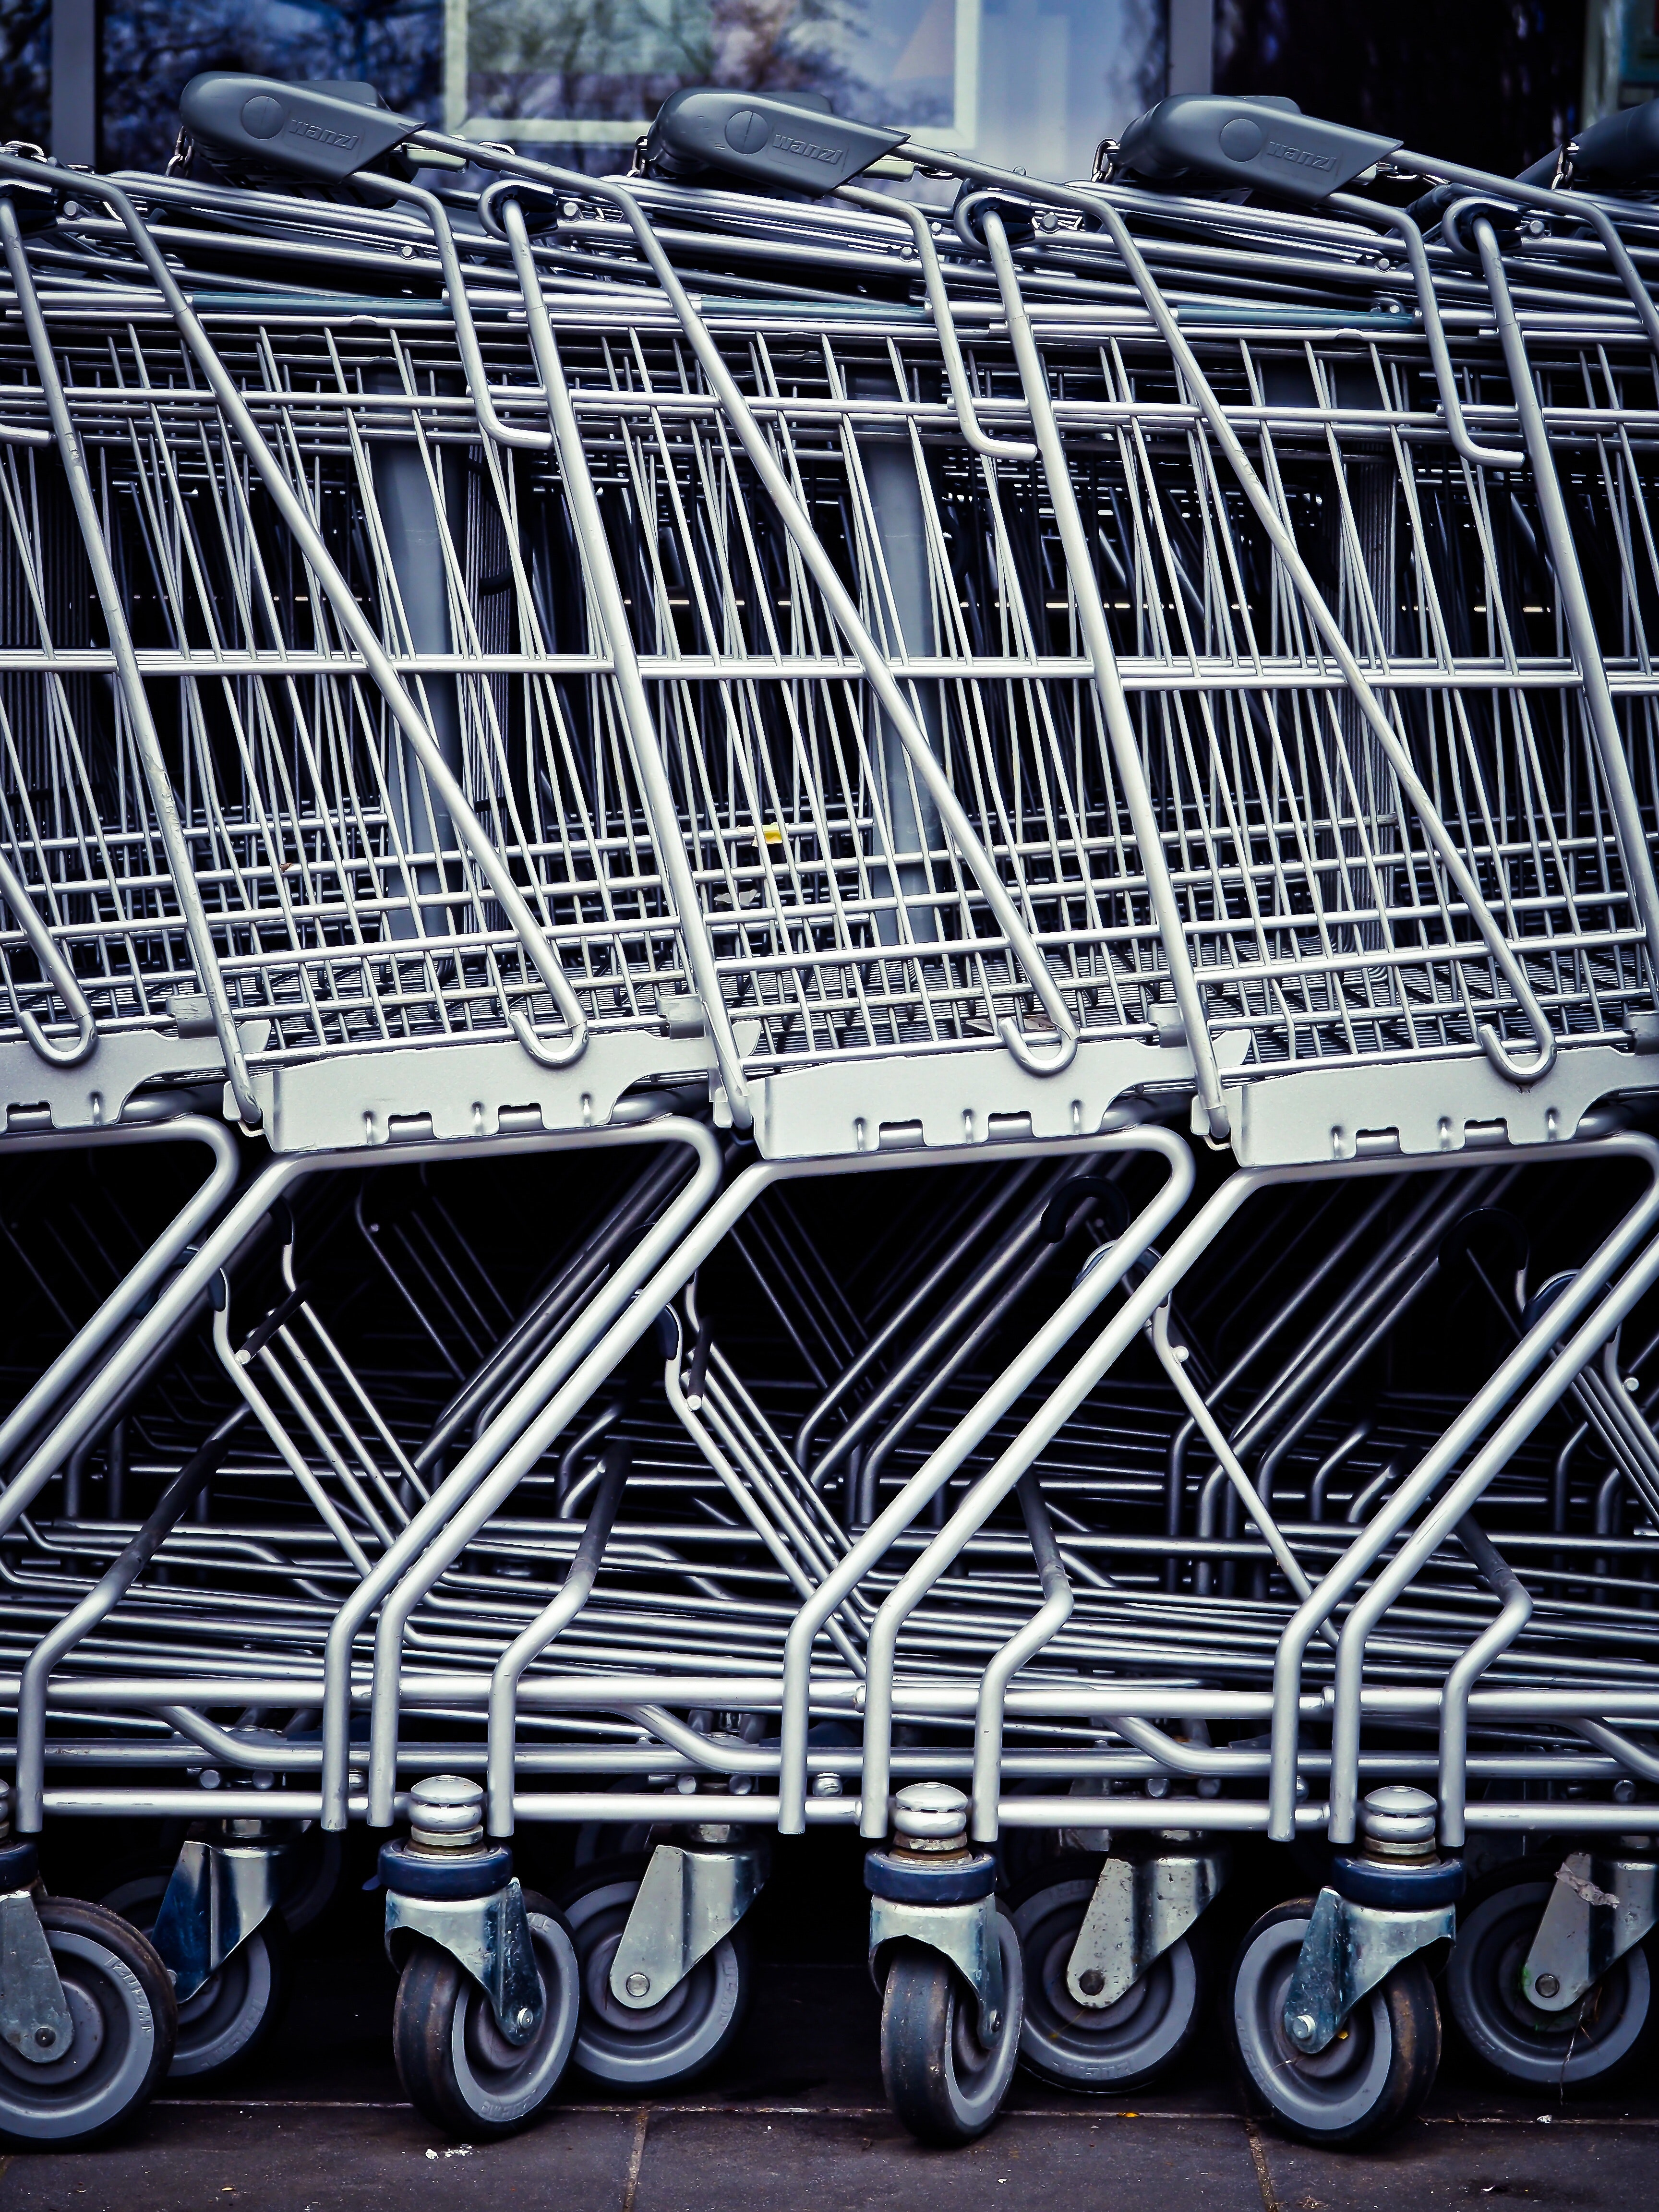 Row of silver shopping carts